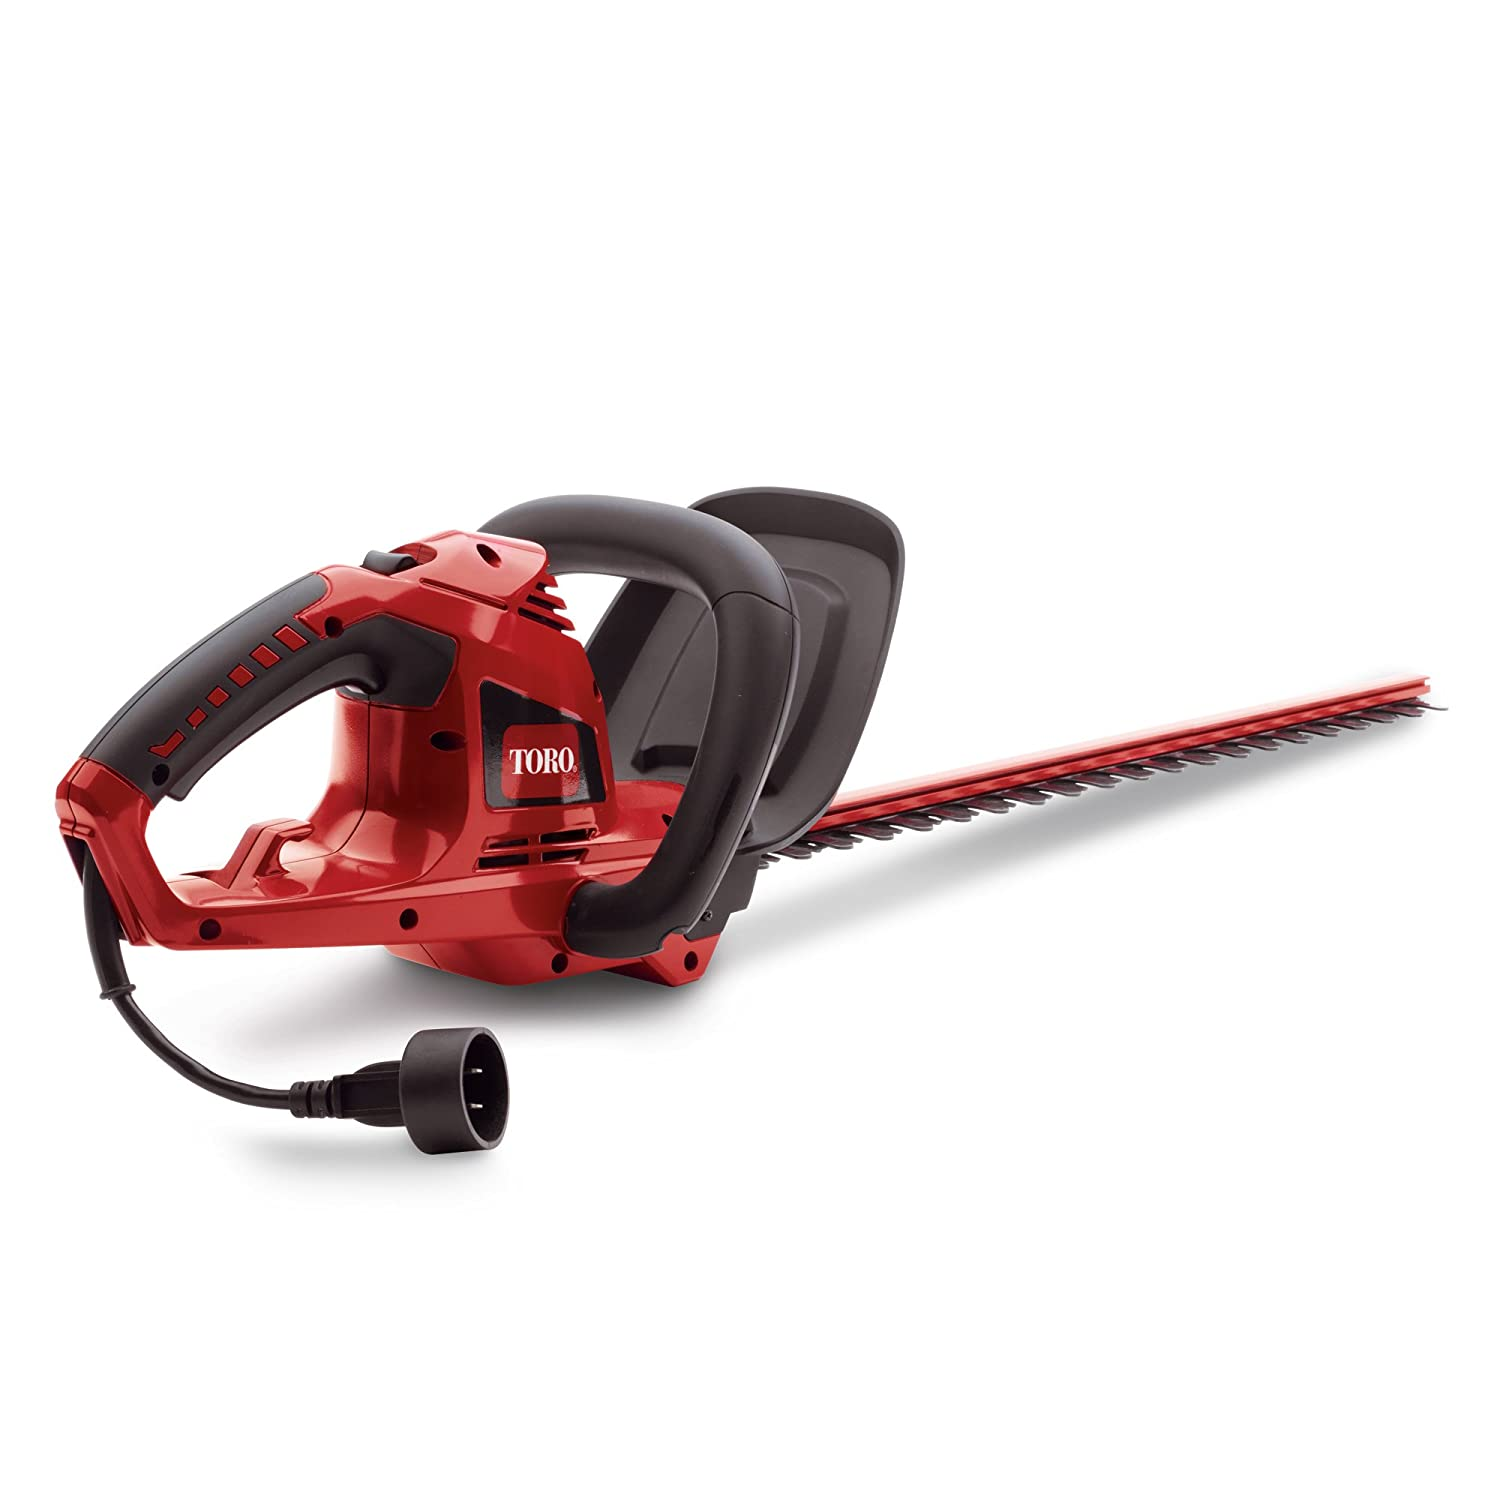 71VJckjw32L._SL1500_ amazon com toro 51490 corded 22 inch hedge trimmer power hedge home depot toy chainsaw wiring diagram at panicattacktreatment.co